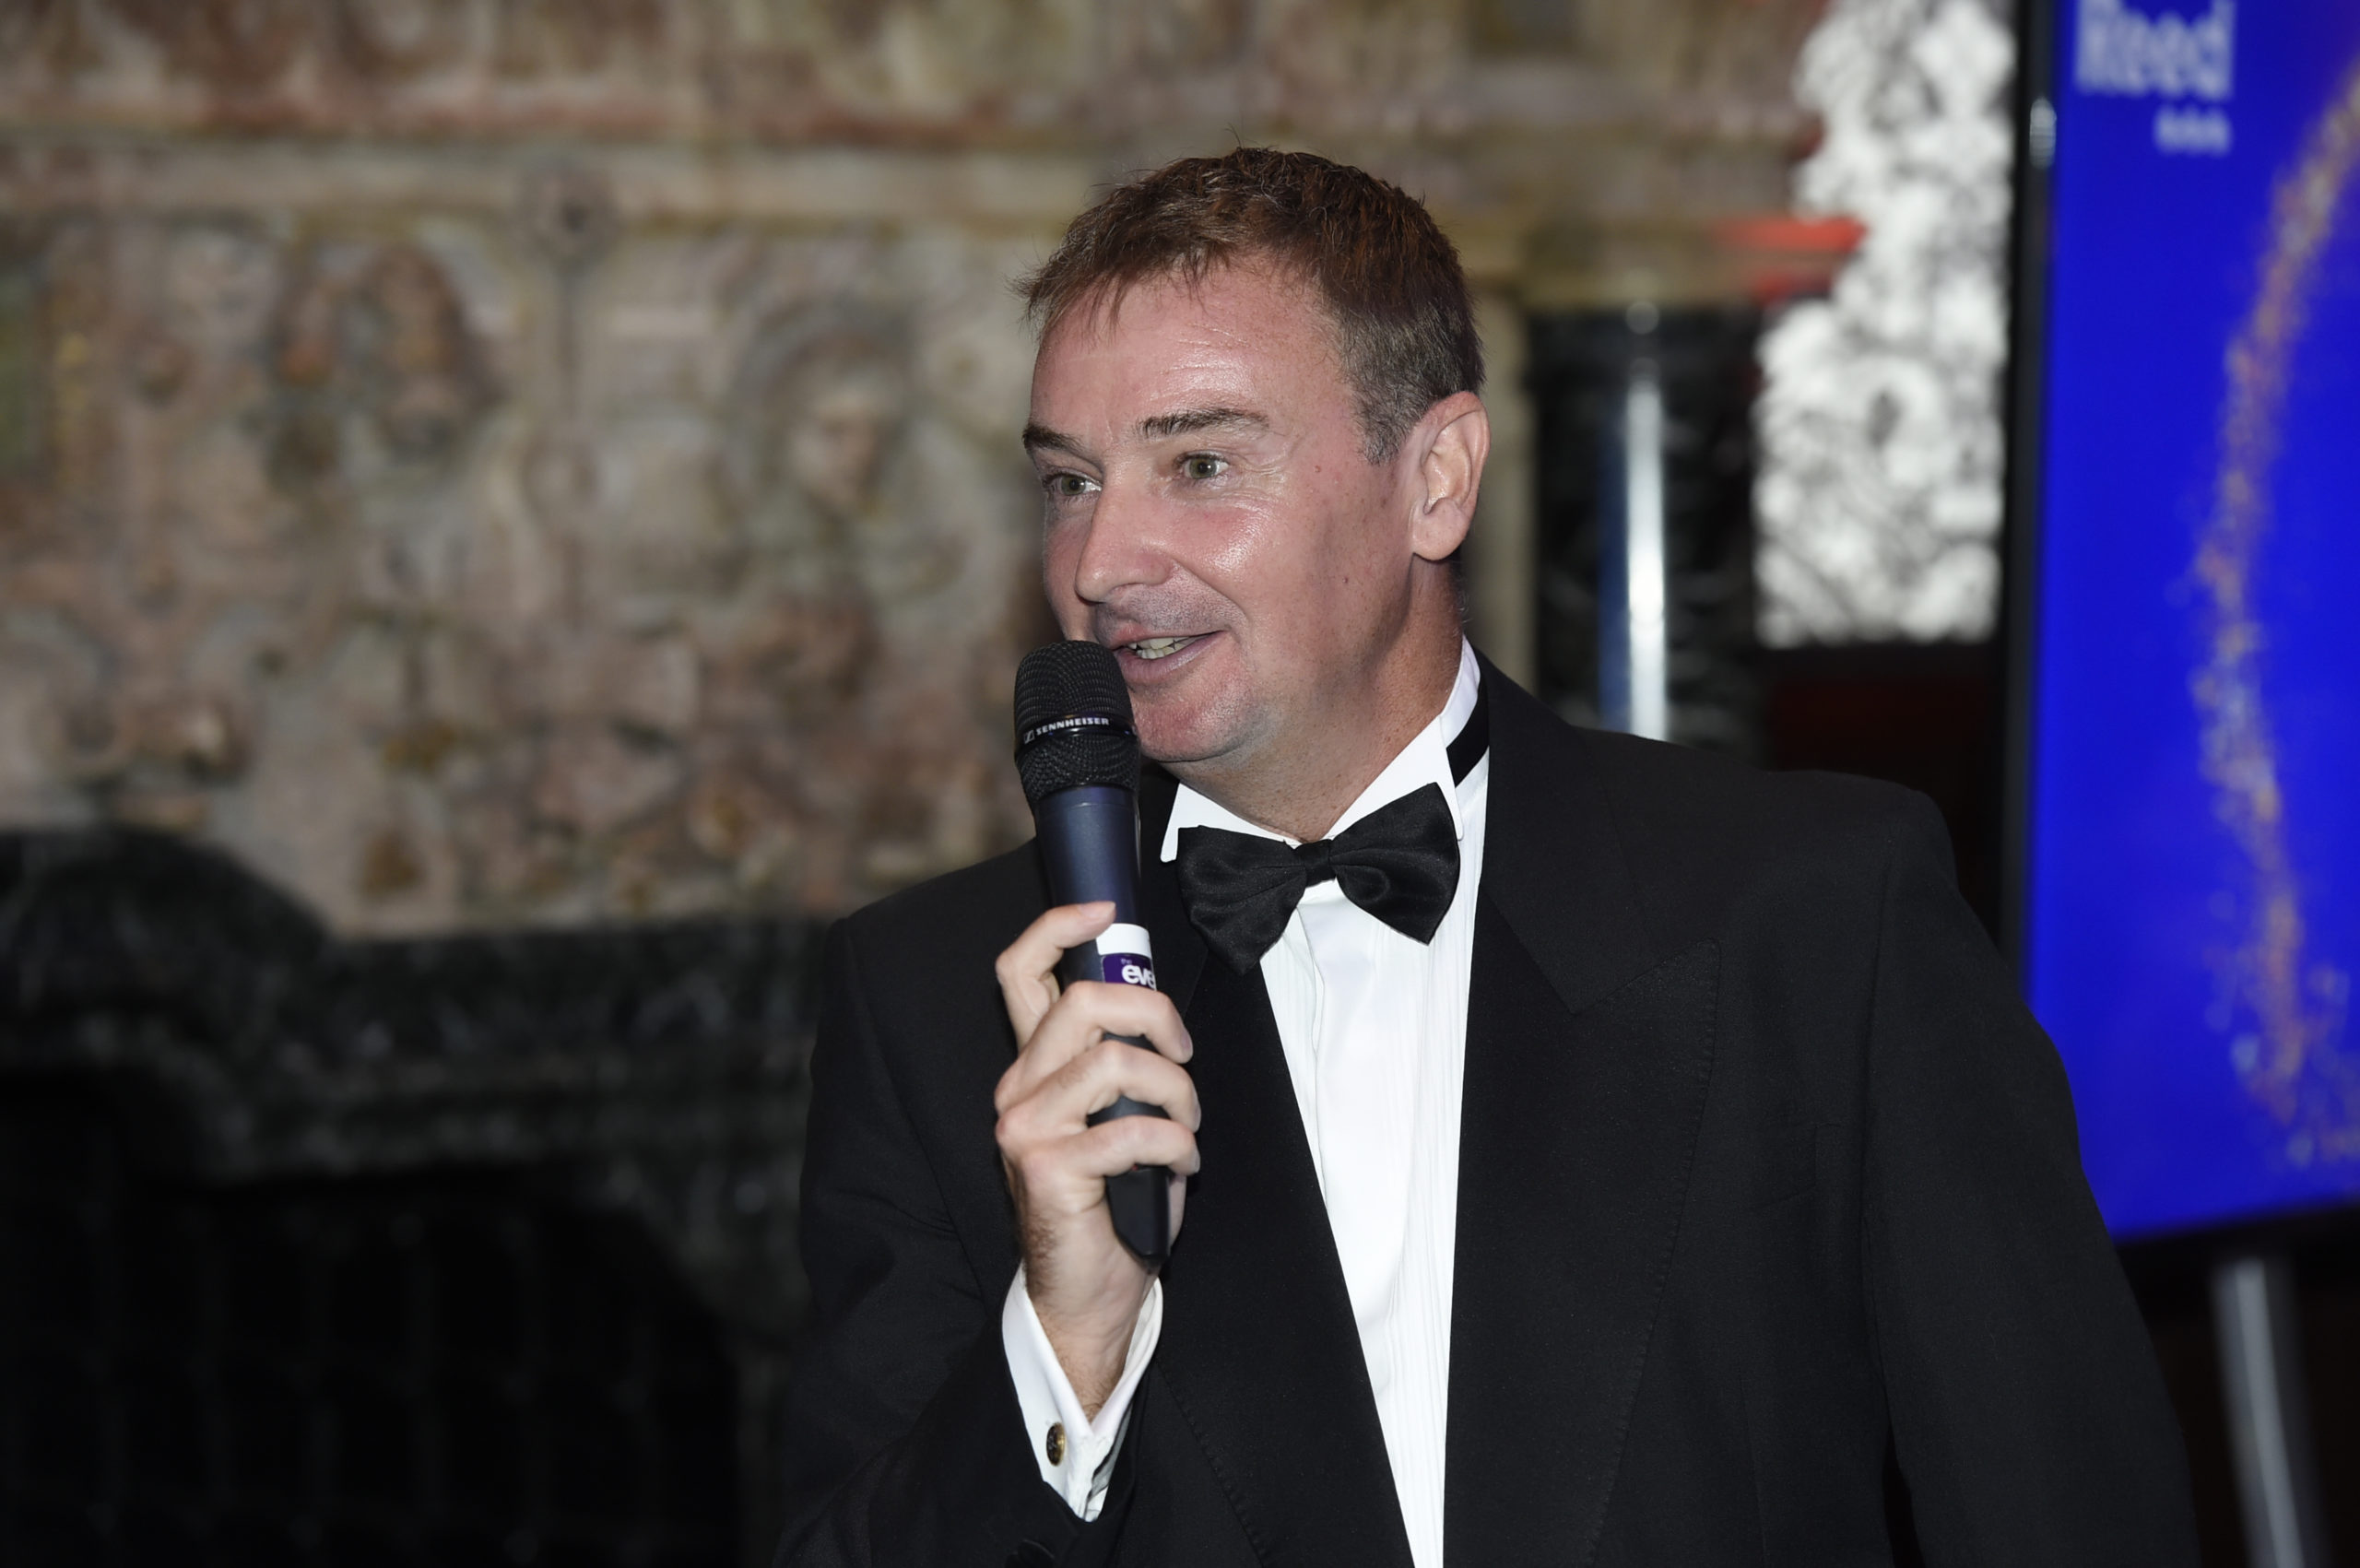 HA2021 High Achievers Ian Nicholas giving speech at the awards evening at Crewe Hall